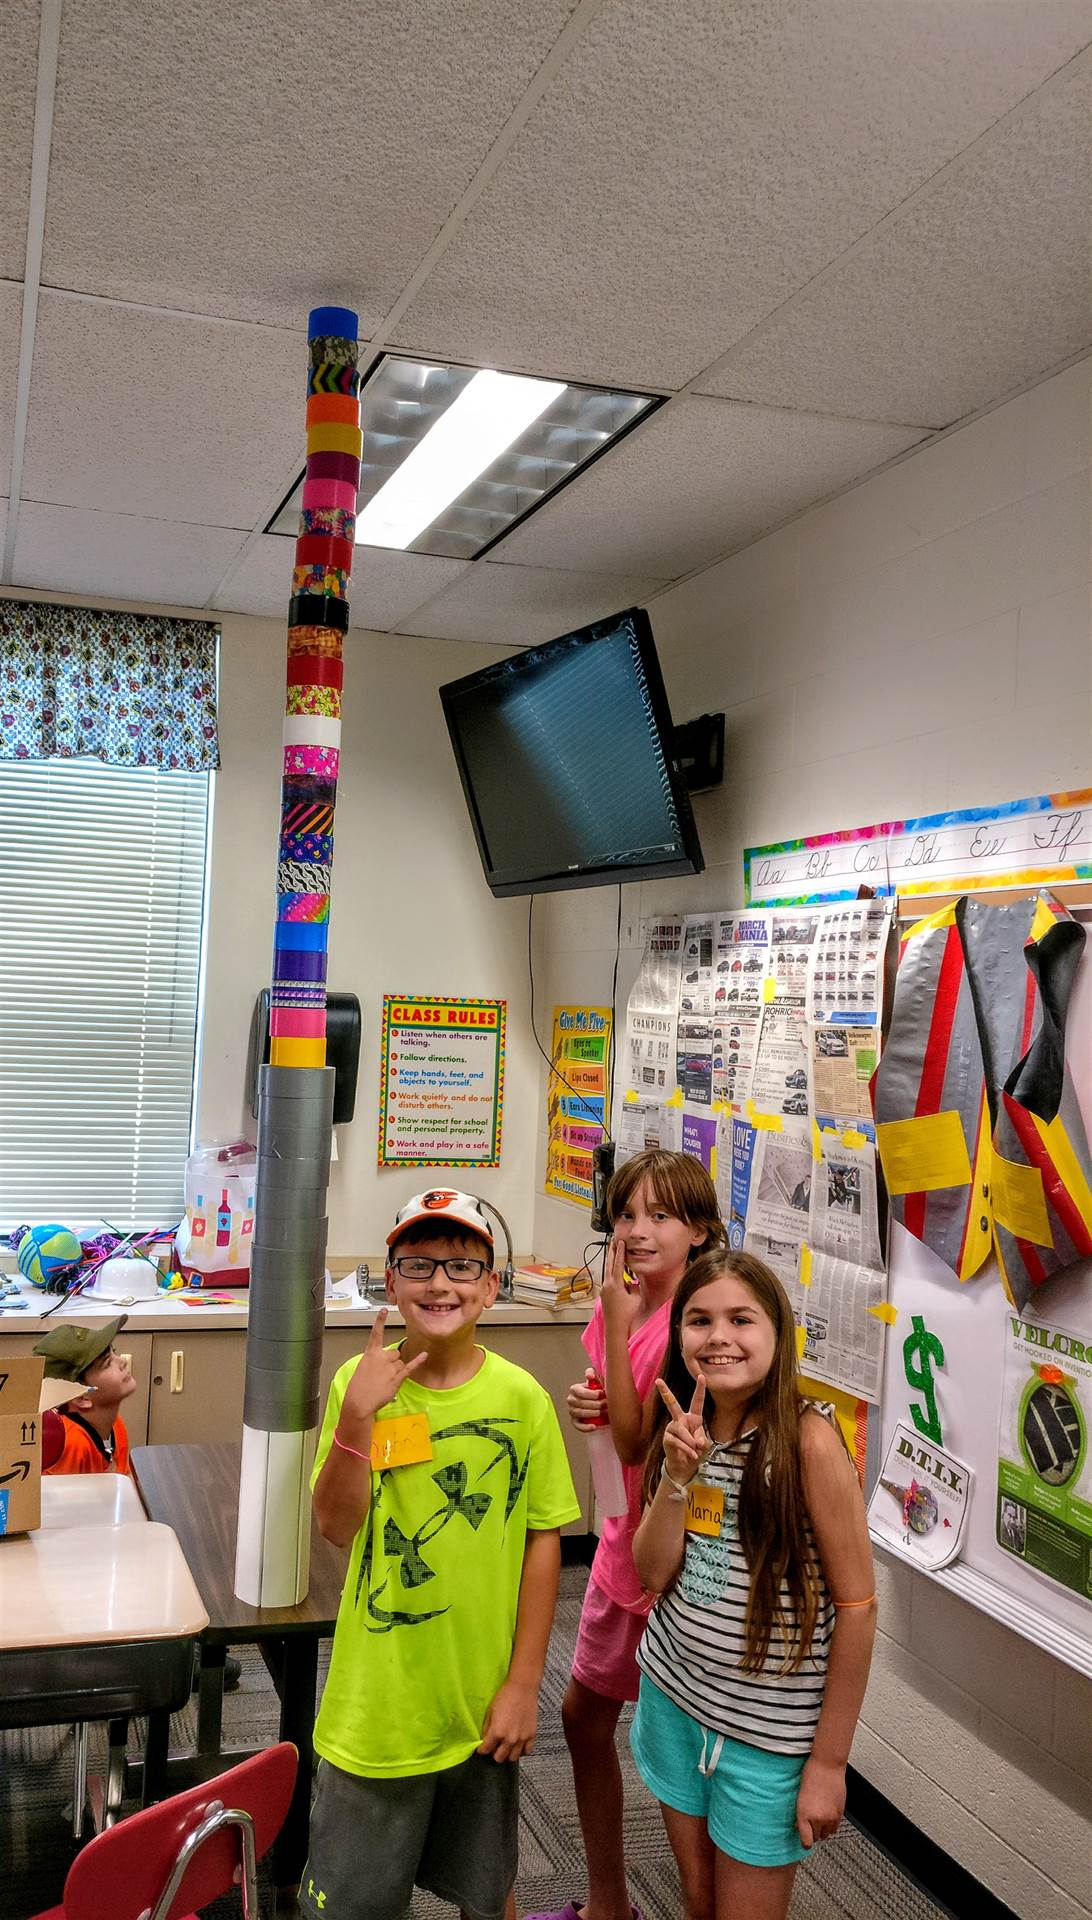 These students constructed a paper base that would hold enough rolls of duct tape to reach the ceili